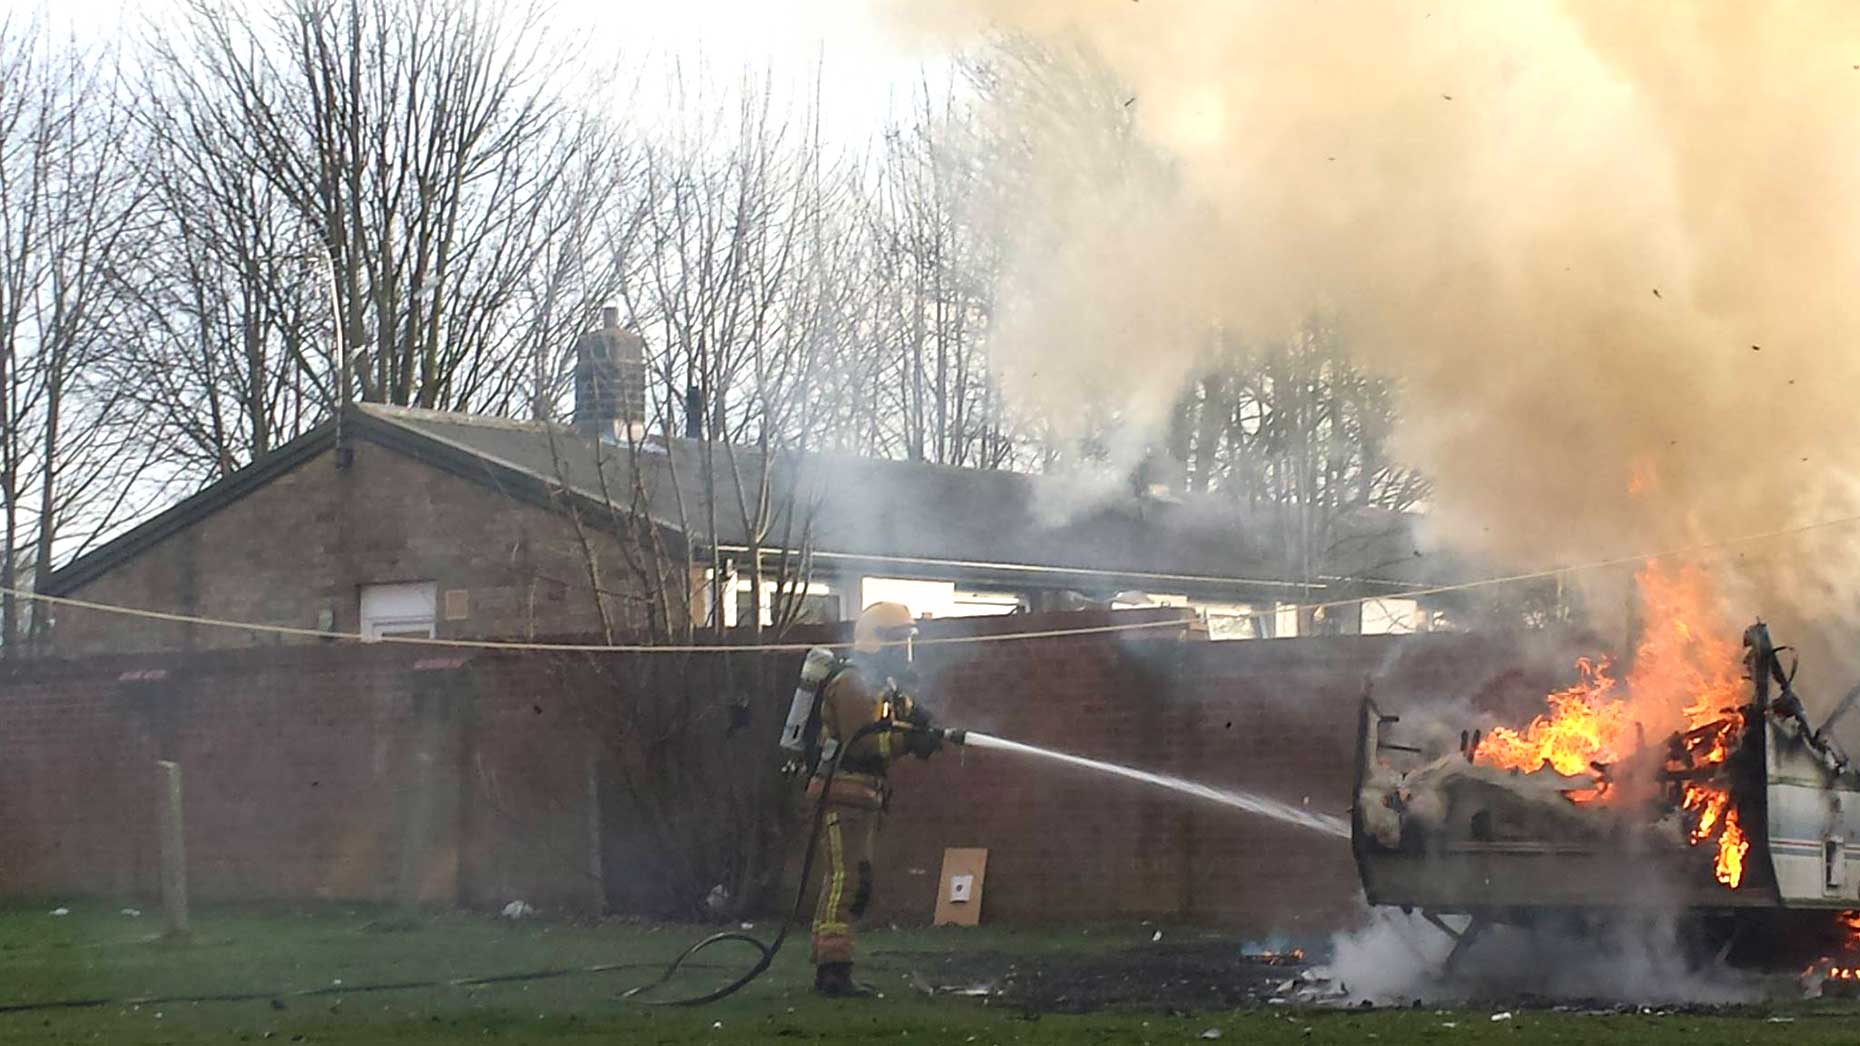 Thick white smoke while firefighters extinguished the caravan on fire in Lincoln. Photo: Nigel Mulhall